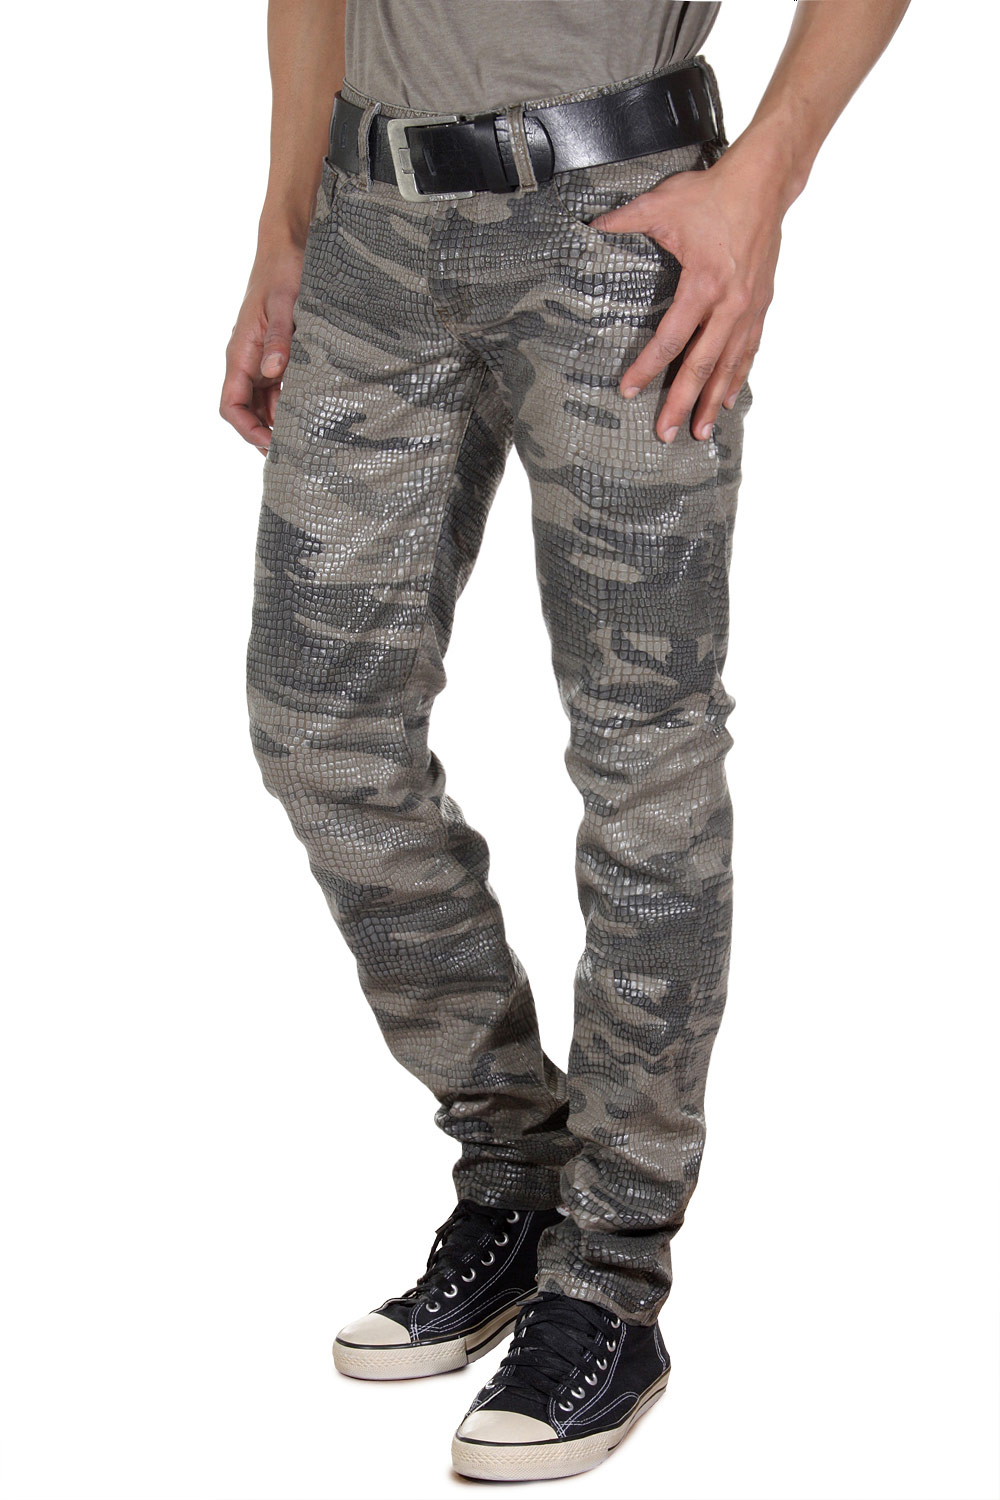 BRIGHT 5-Pocket Hose regular fit auf oboy.de